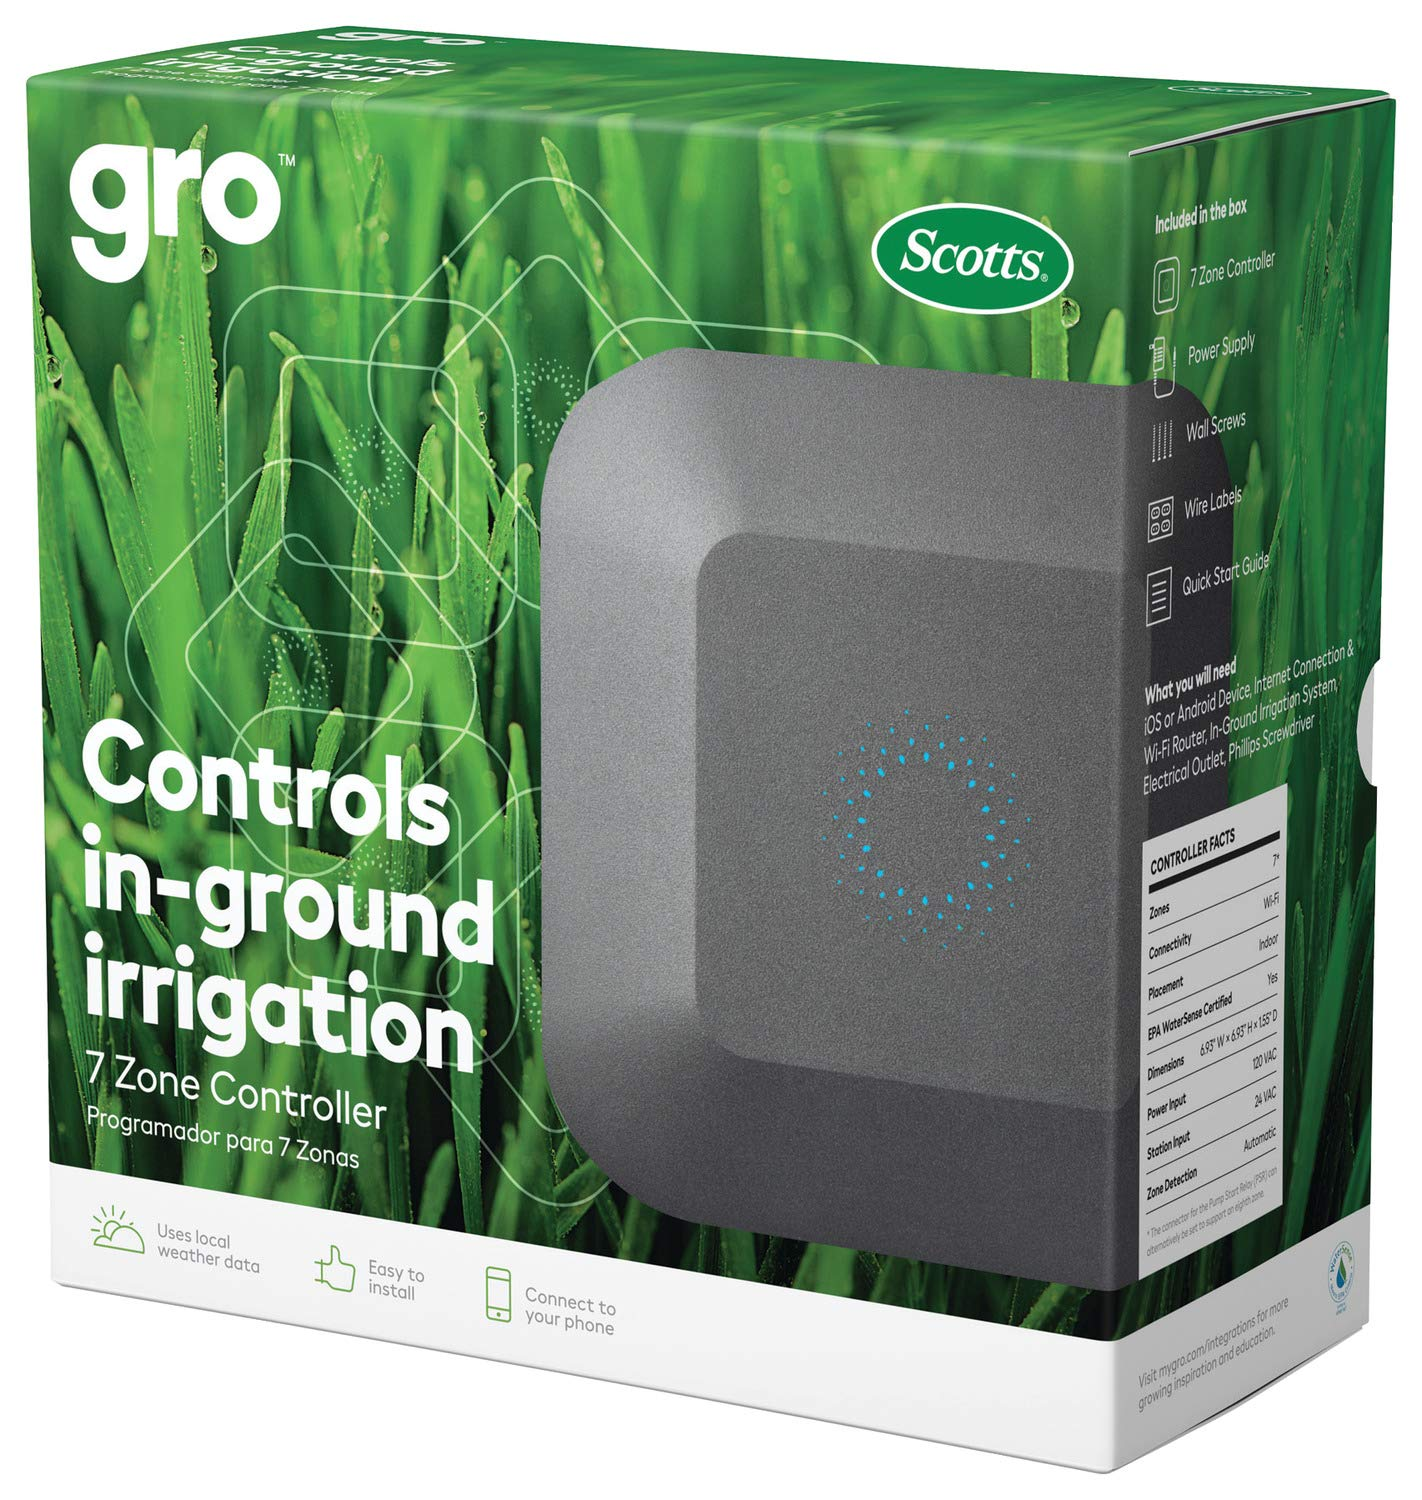 Gro 7 Zone Controller from Scotts - Sprinkler/Irrigation Controller, Works with Alexa and Google Assistant by Scotts